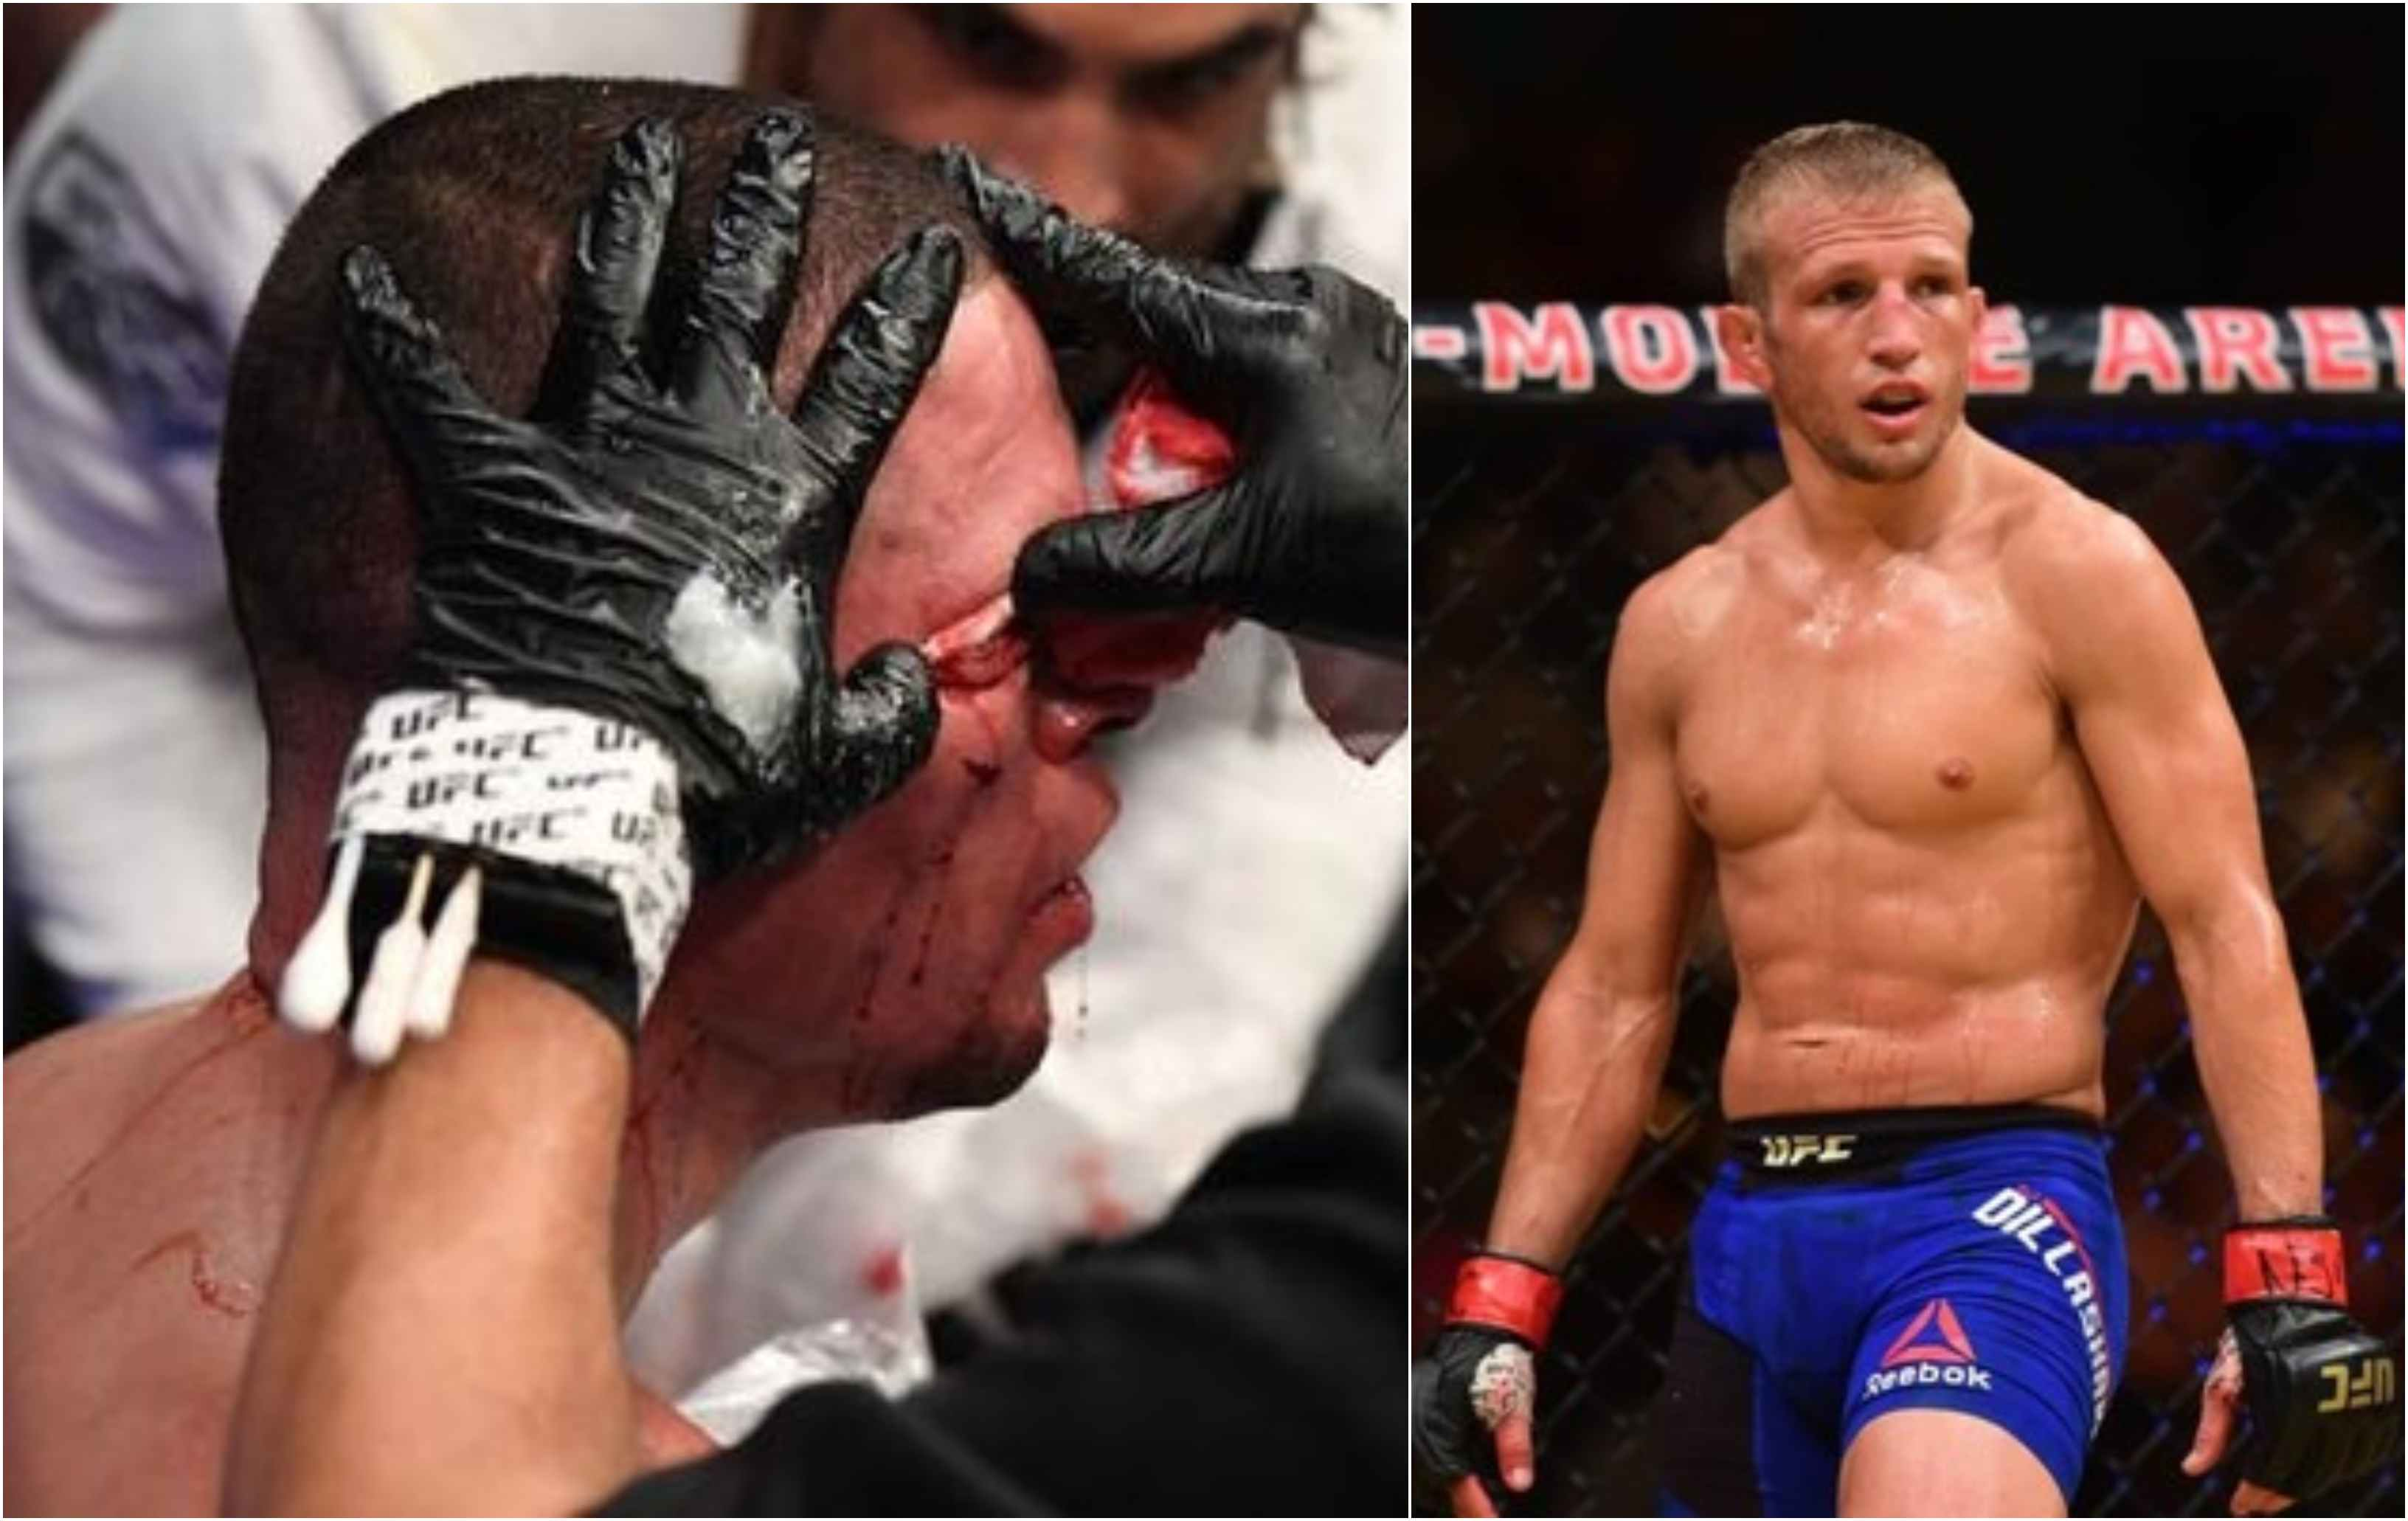 TJ Dillashaw agrees with the Nate Diaz vs Jorge Masvidal stoppage - Masvidal